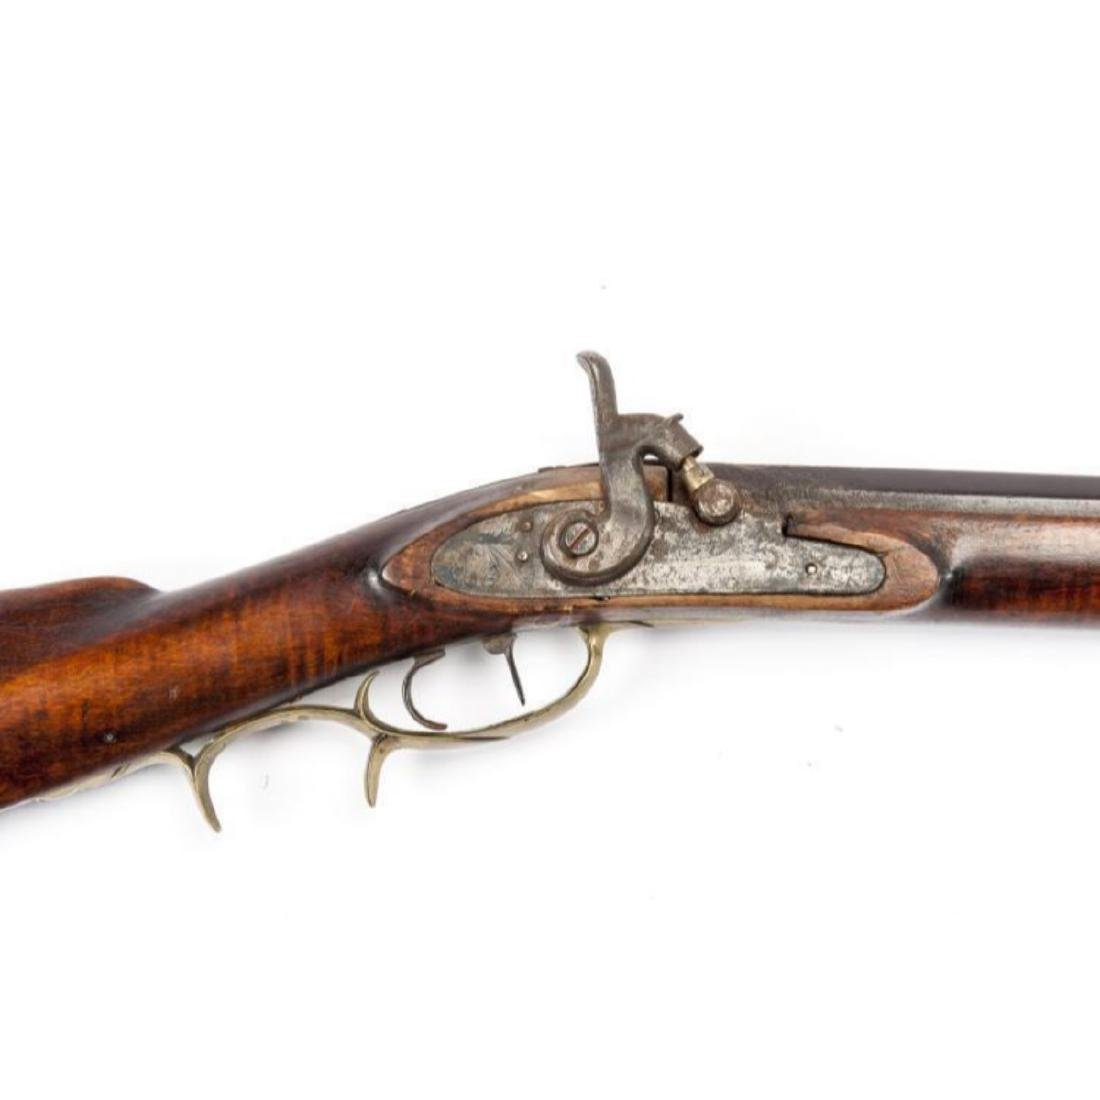 Unmarked 19th C Percussion Musket - 4